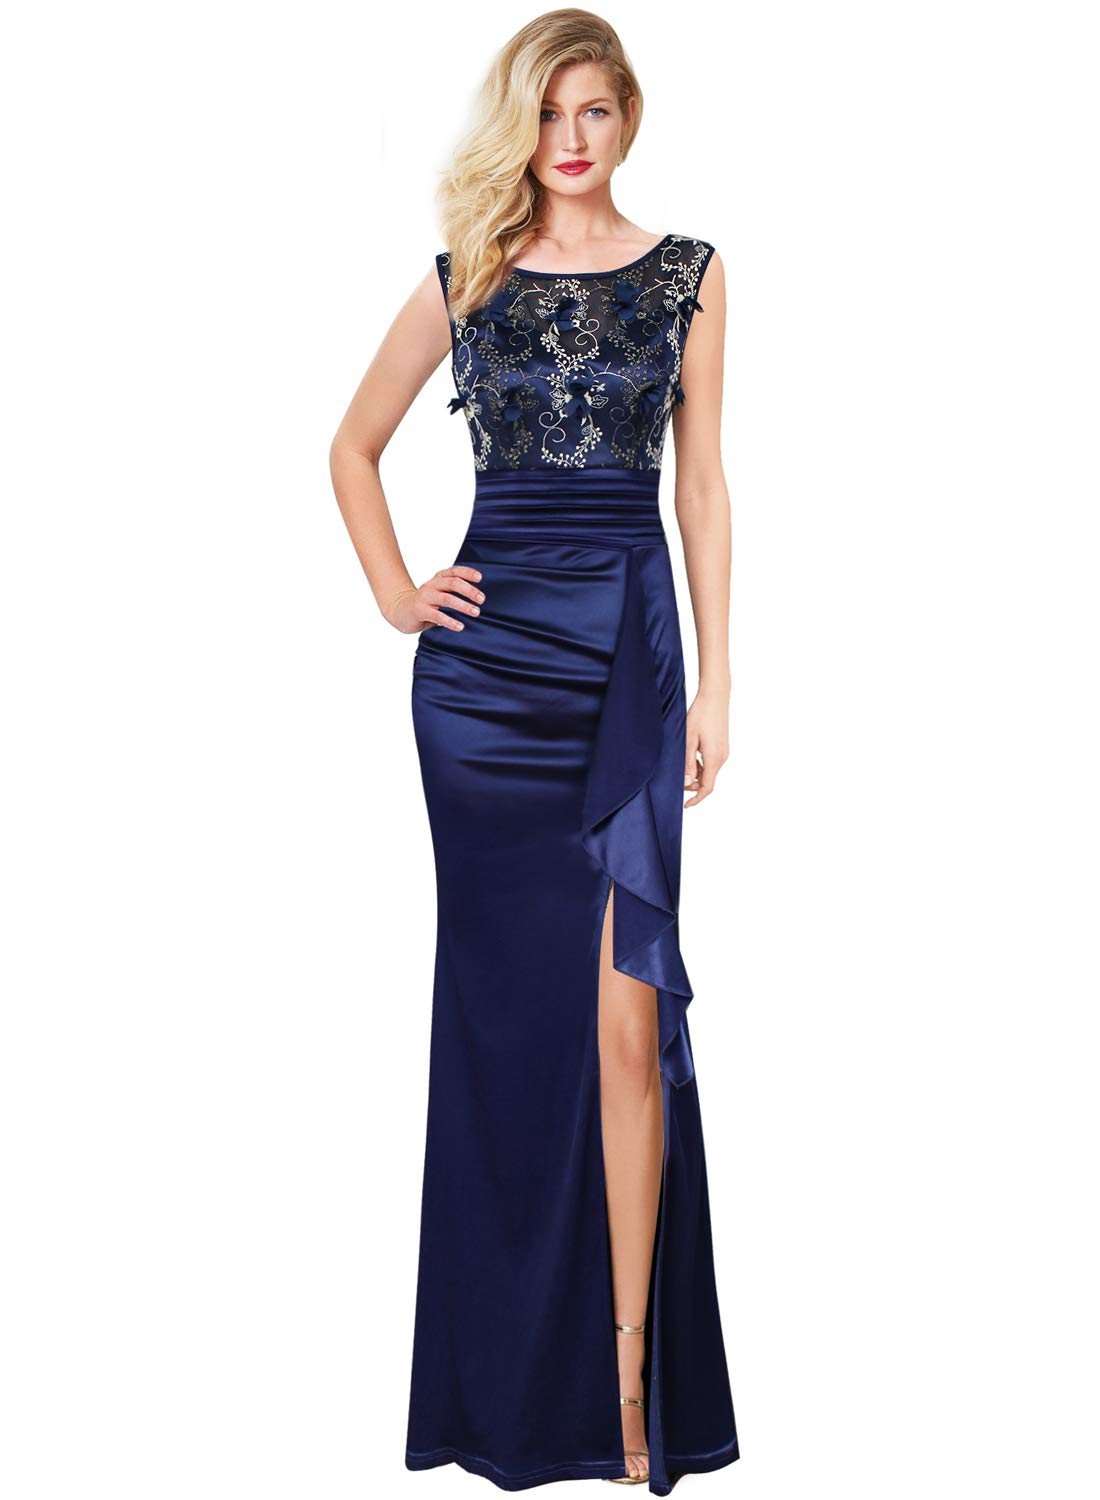 VFSHOW Womens Formal Ruched Ruffles Embroidered Evening Wedding Maxi Dress 290 BLU L